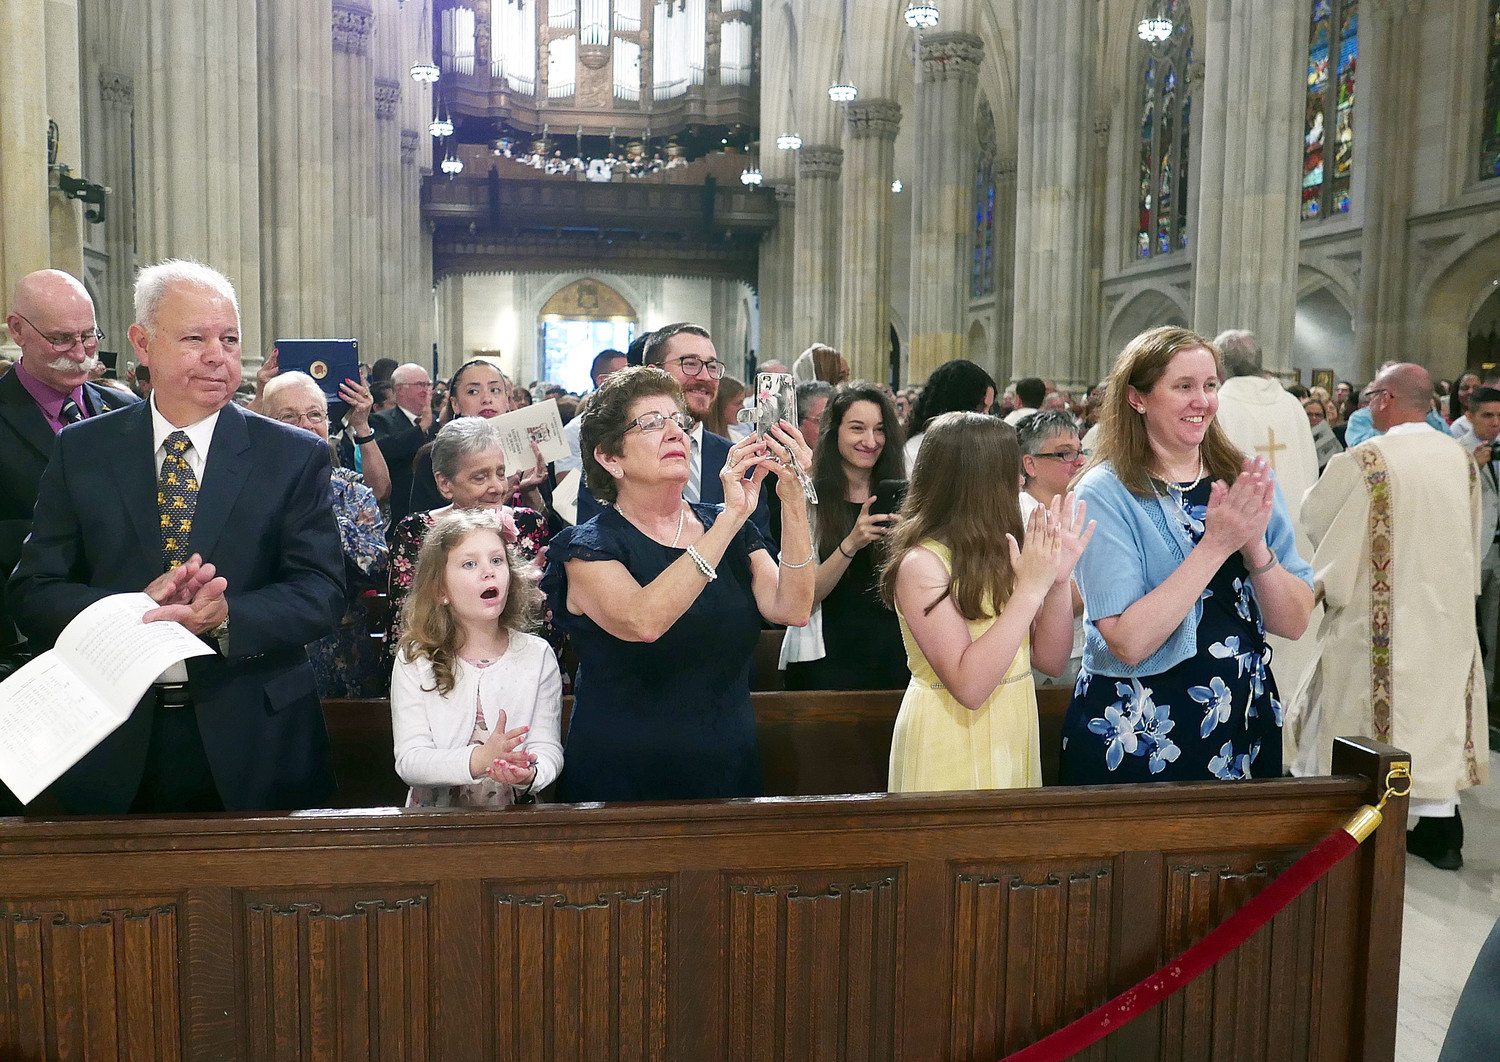 amilies join in applause as the new deacons recess at the end of Mass. Those in the front pew include Kerri Bennett, right, wife of Deacon Thomas Bennett, and their daughters, Abby and Molly.